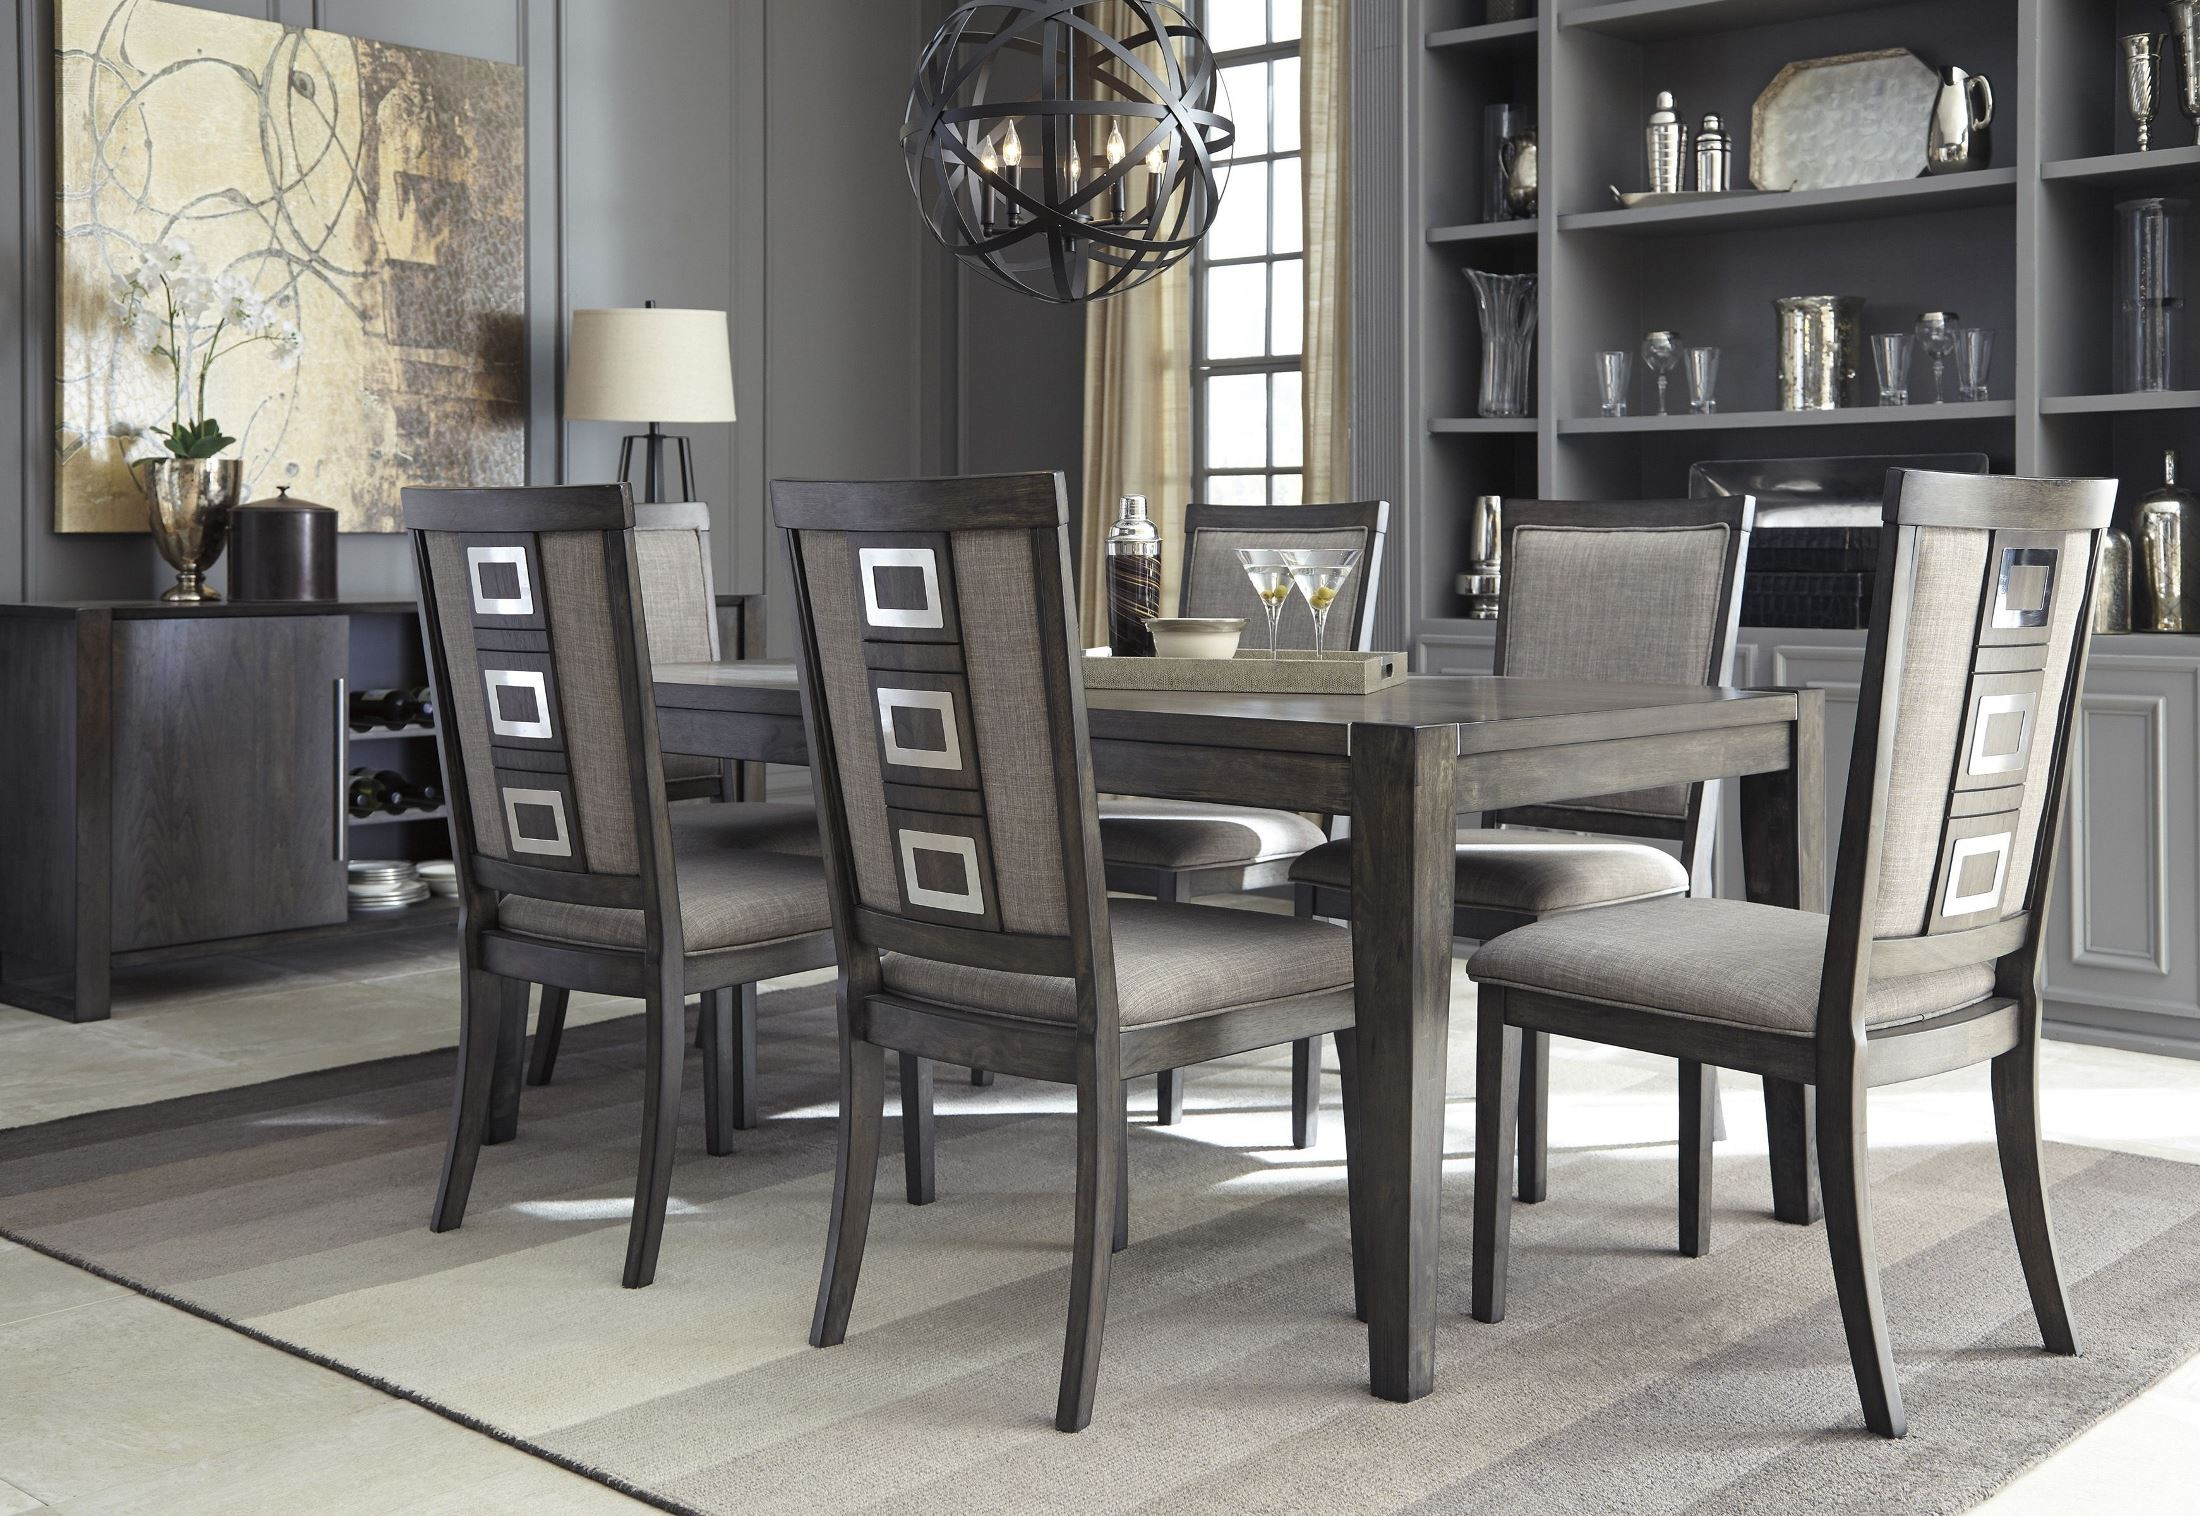 Delicieux Coleman Furniture